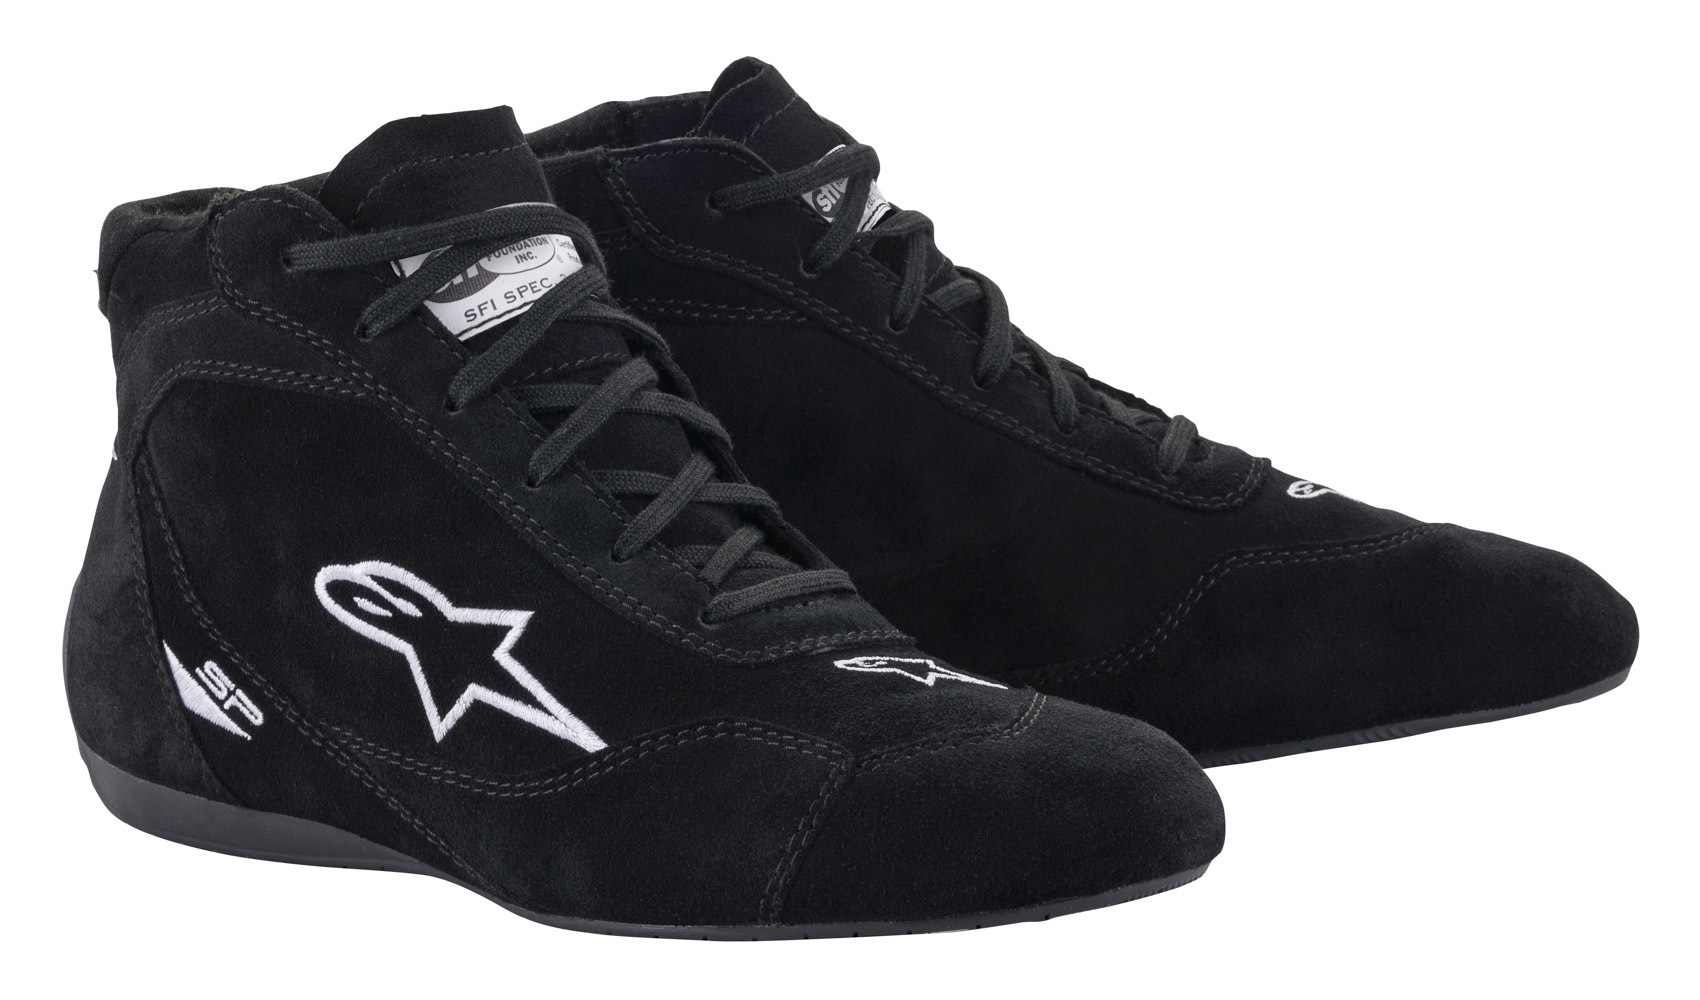 Alpinestars USA 2710621-10-7 Shoe, SP V2, Driving, Mid-Top, SFI3.3/5, Suede Outer, Nomex Inner, Black, Size 7, Pair